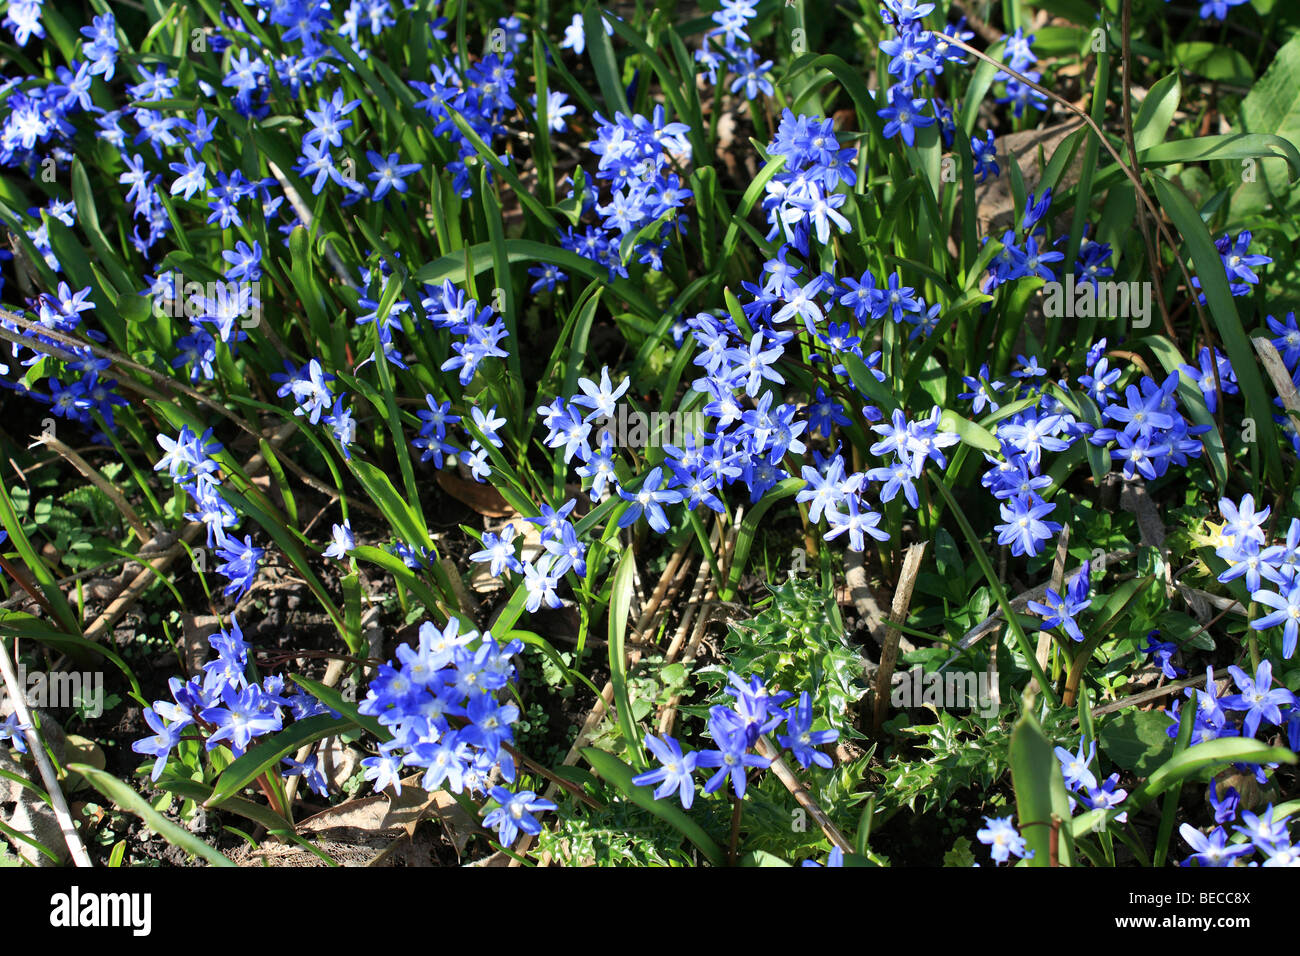 The Vivid Blue Flowers Of Chionodoxa Luciliae Or Glory Of The Snow